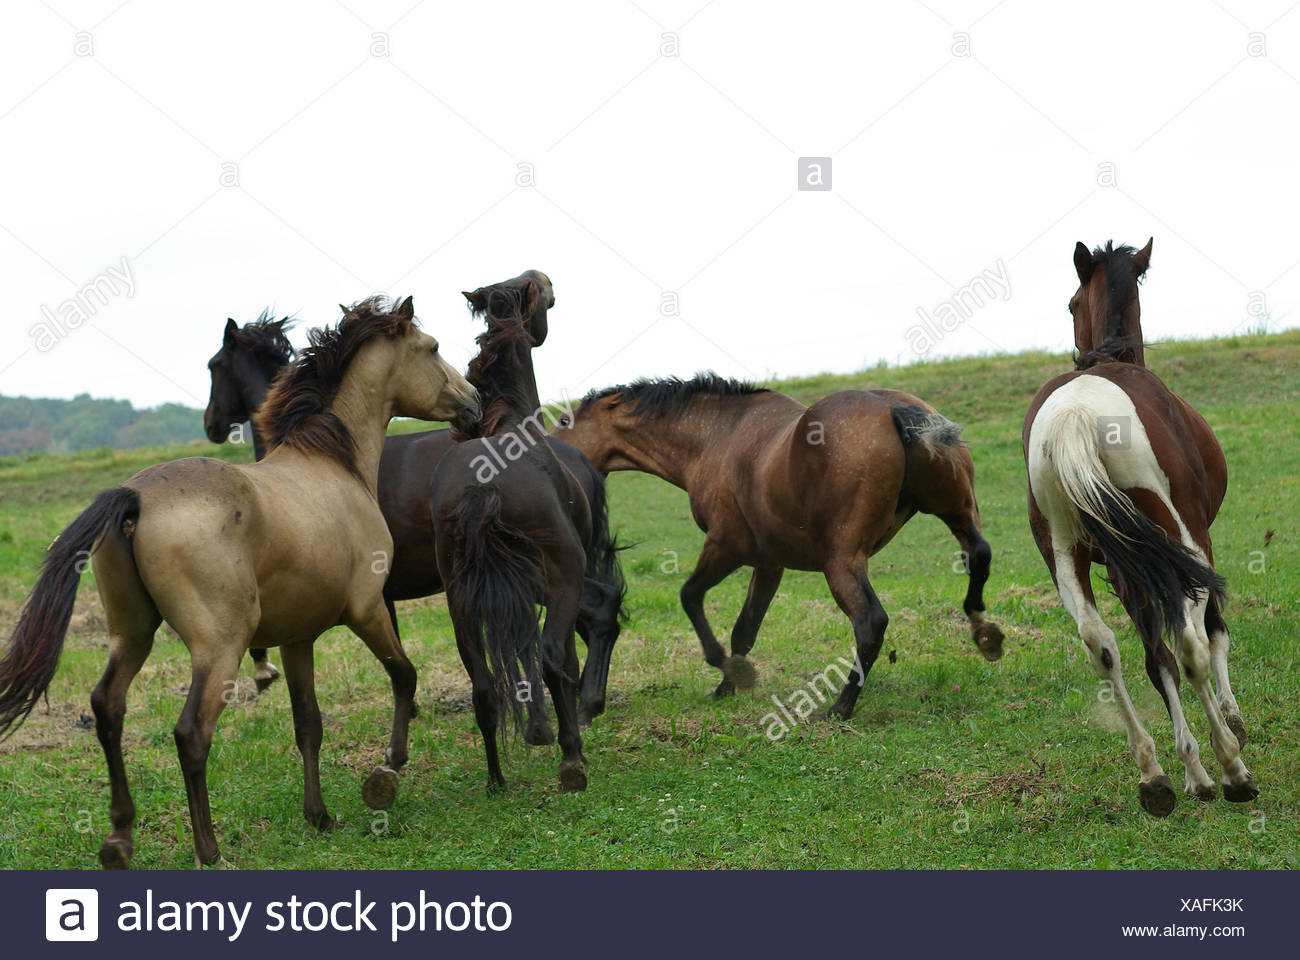 Horses Rank fights - Stock Image